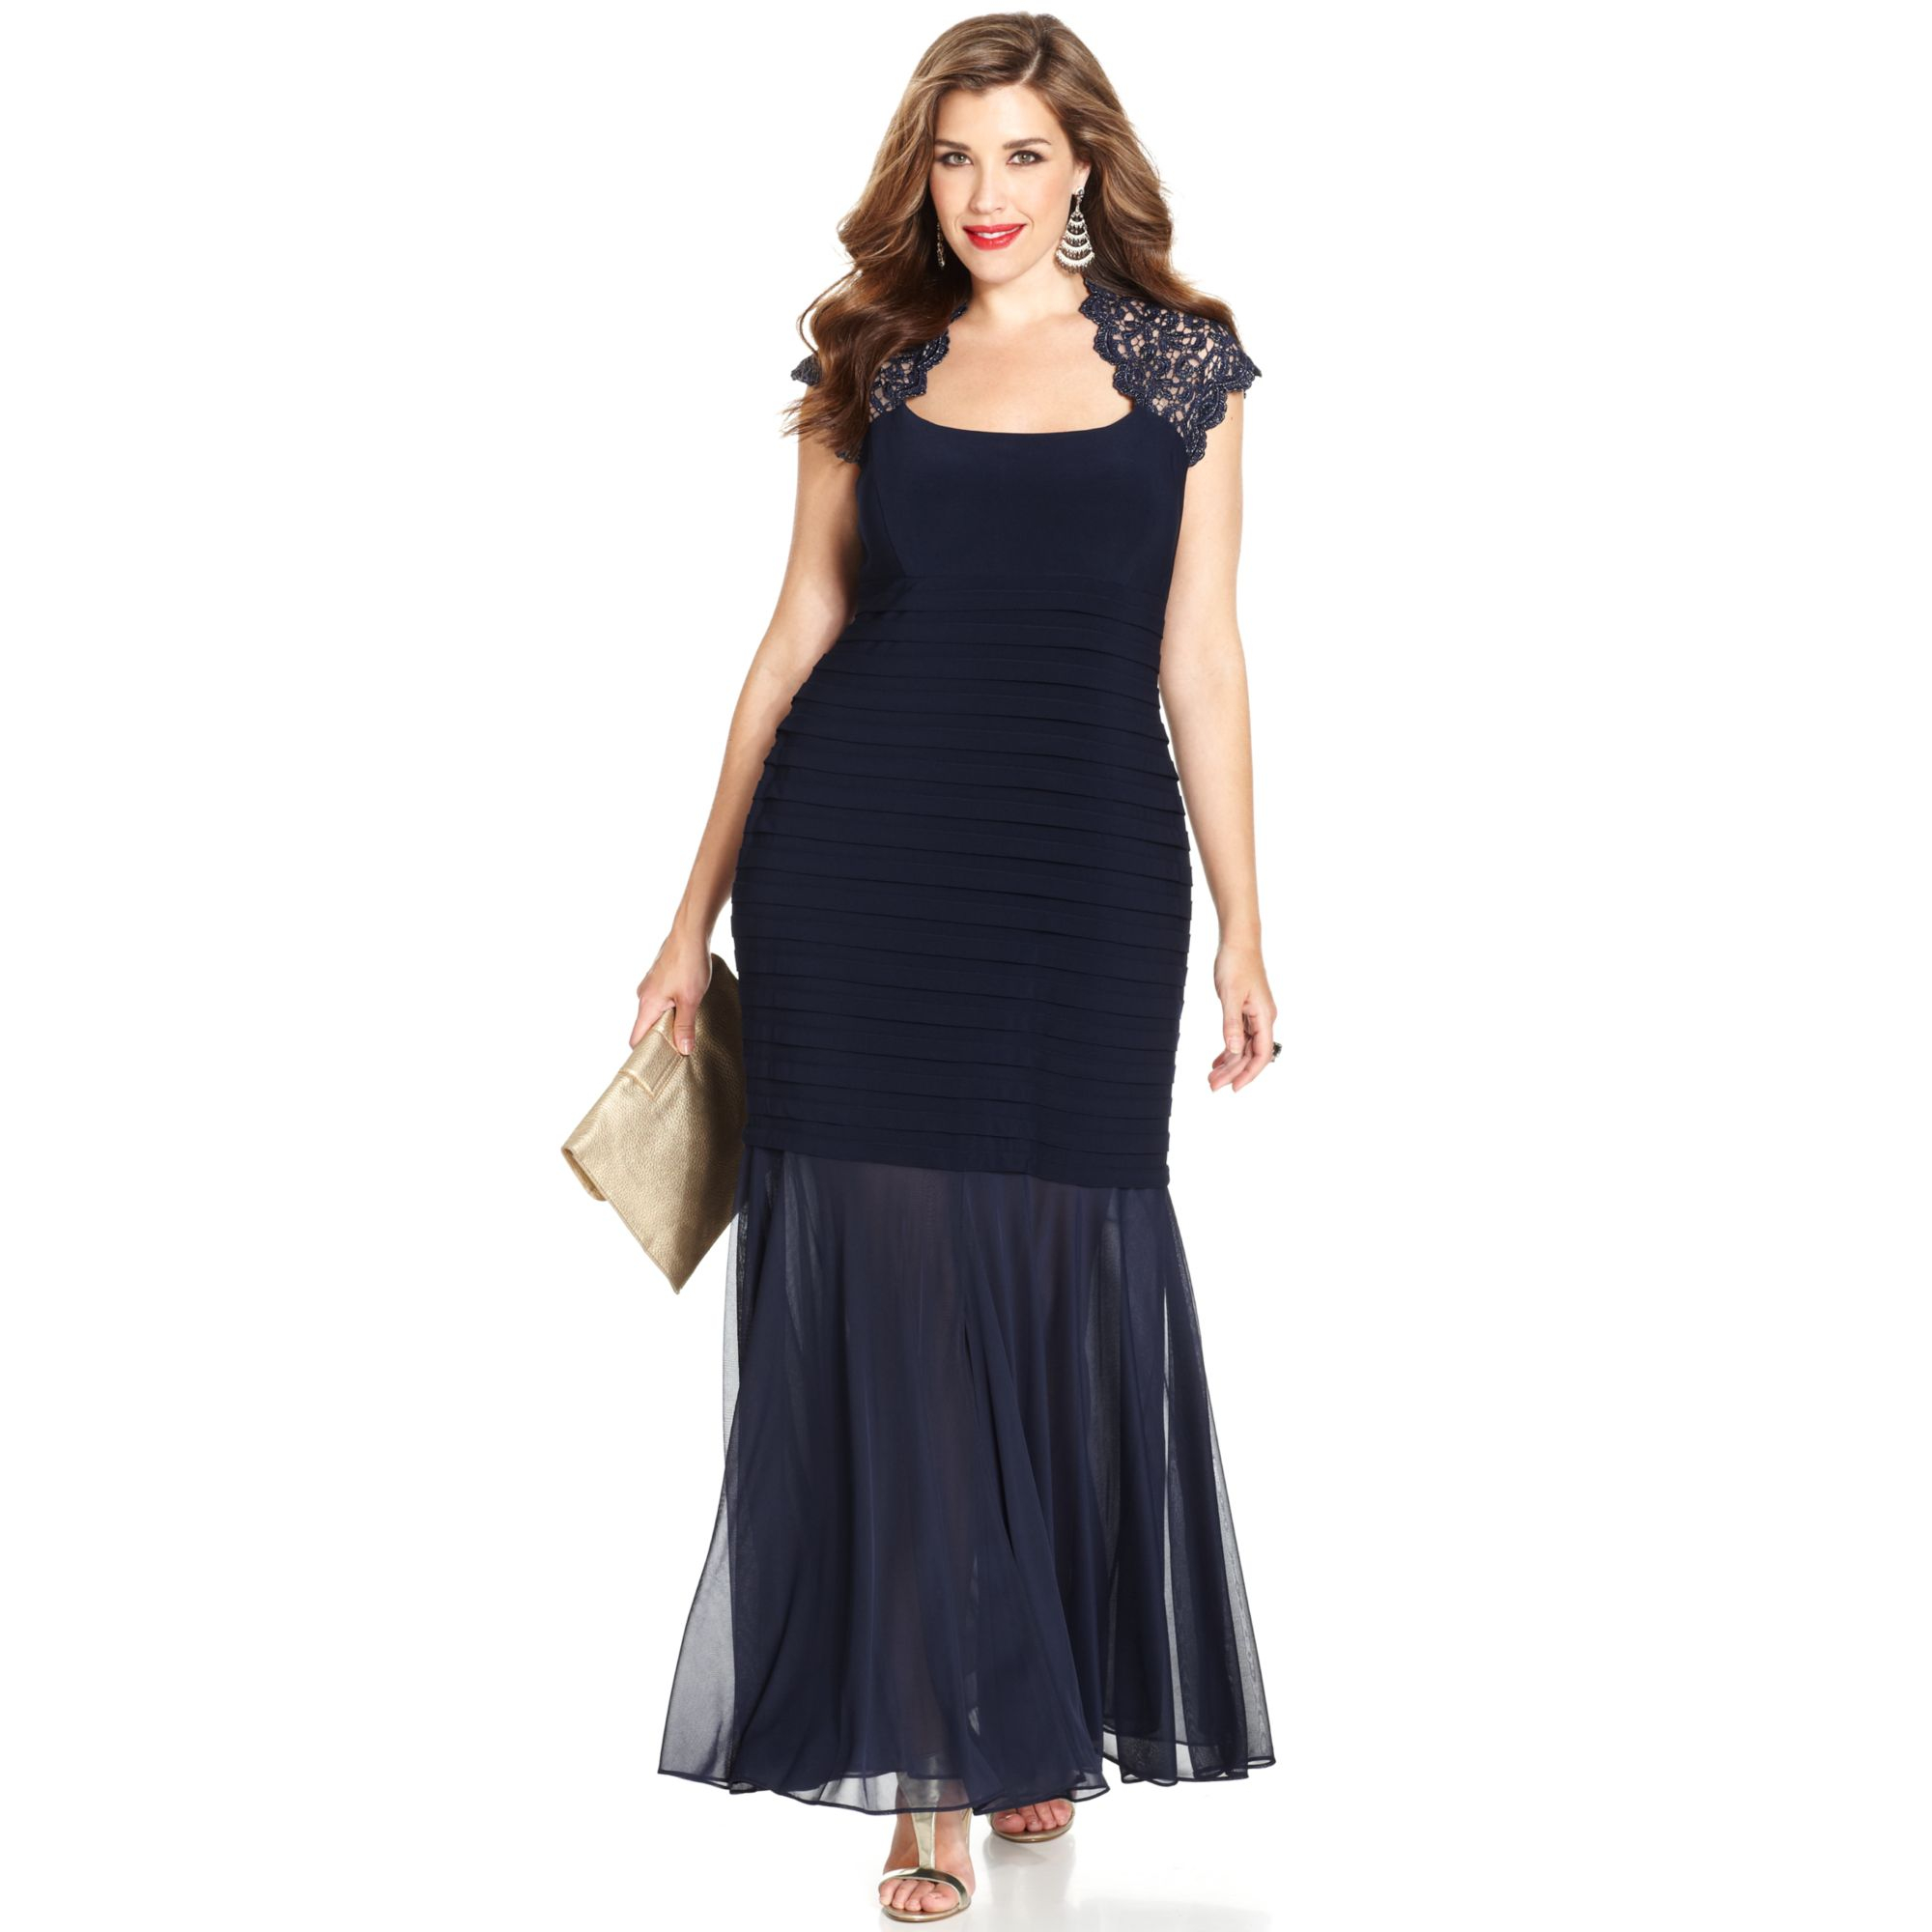 plus size dresses in black